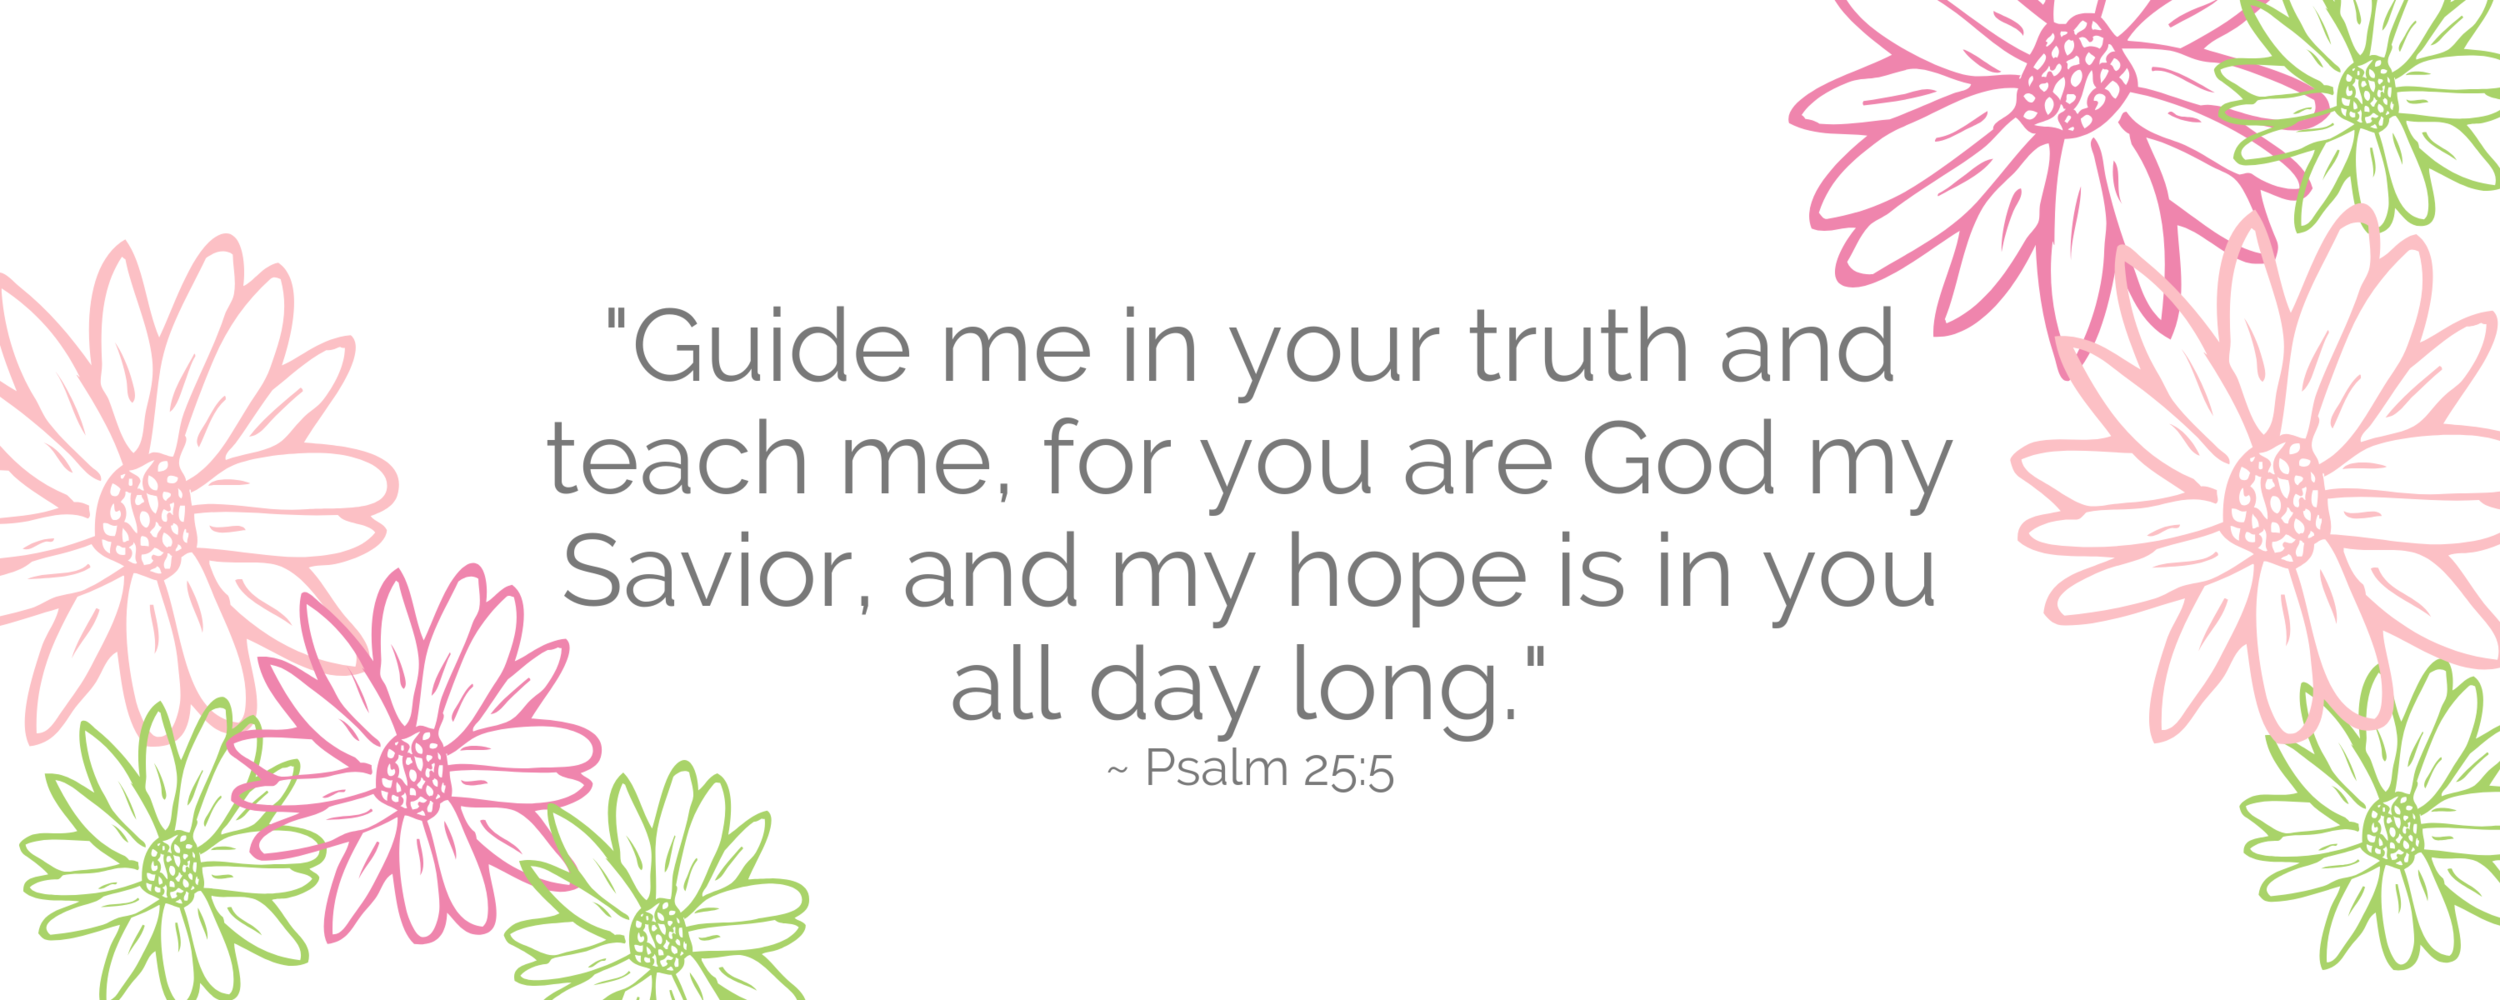 Sue Banner Website Scripture (1).png